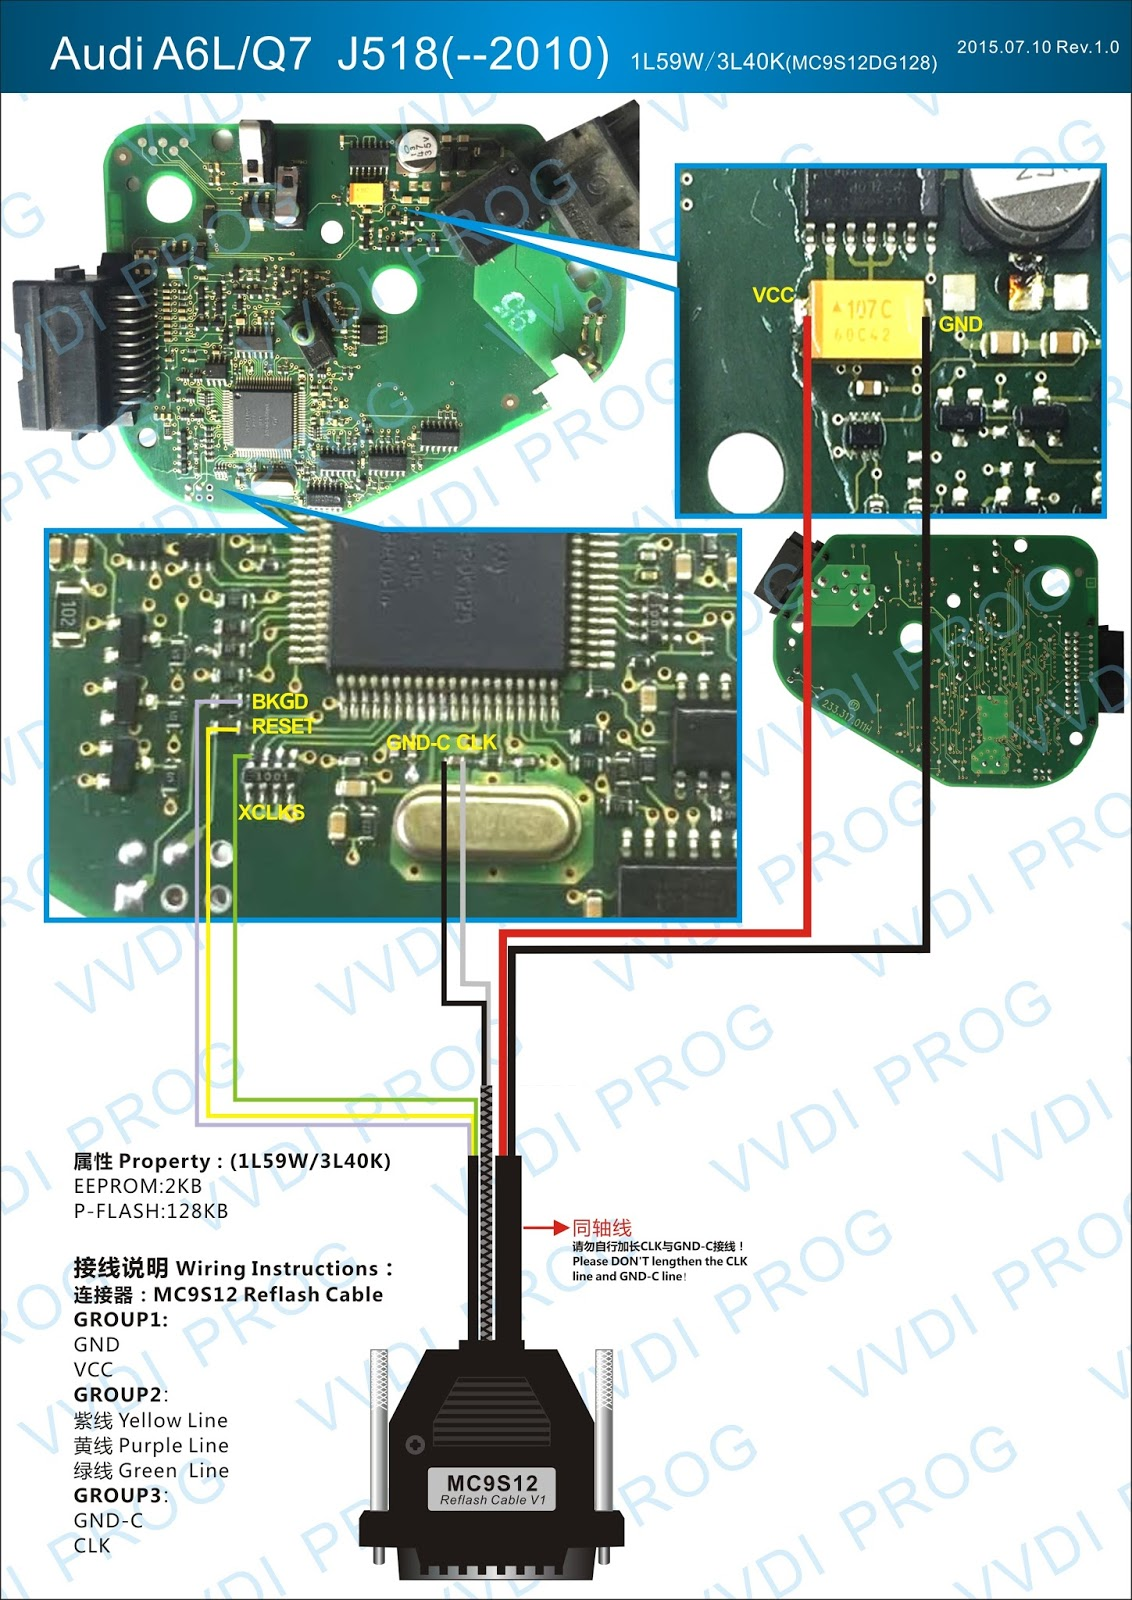 Car Ecu Wiring Diagram Electrical Diagrams Honda Pinout Vvdi Prog 4 1 2 Connection Obd2 Vehicle